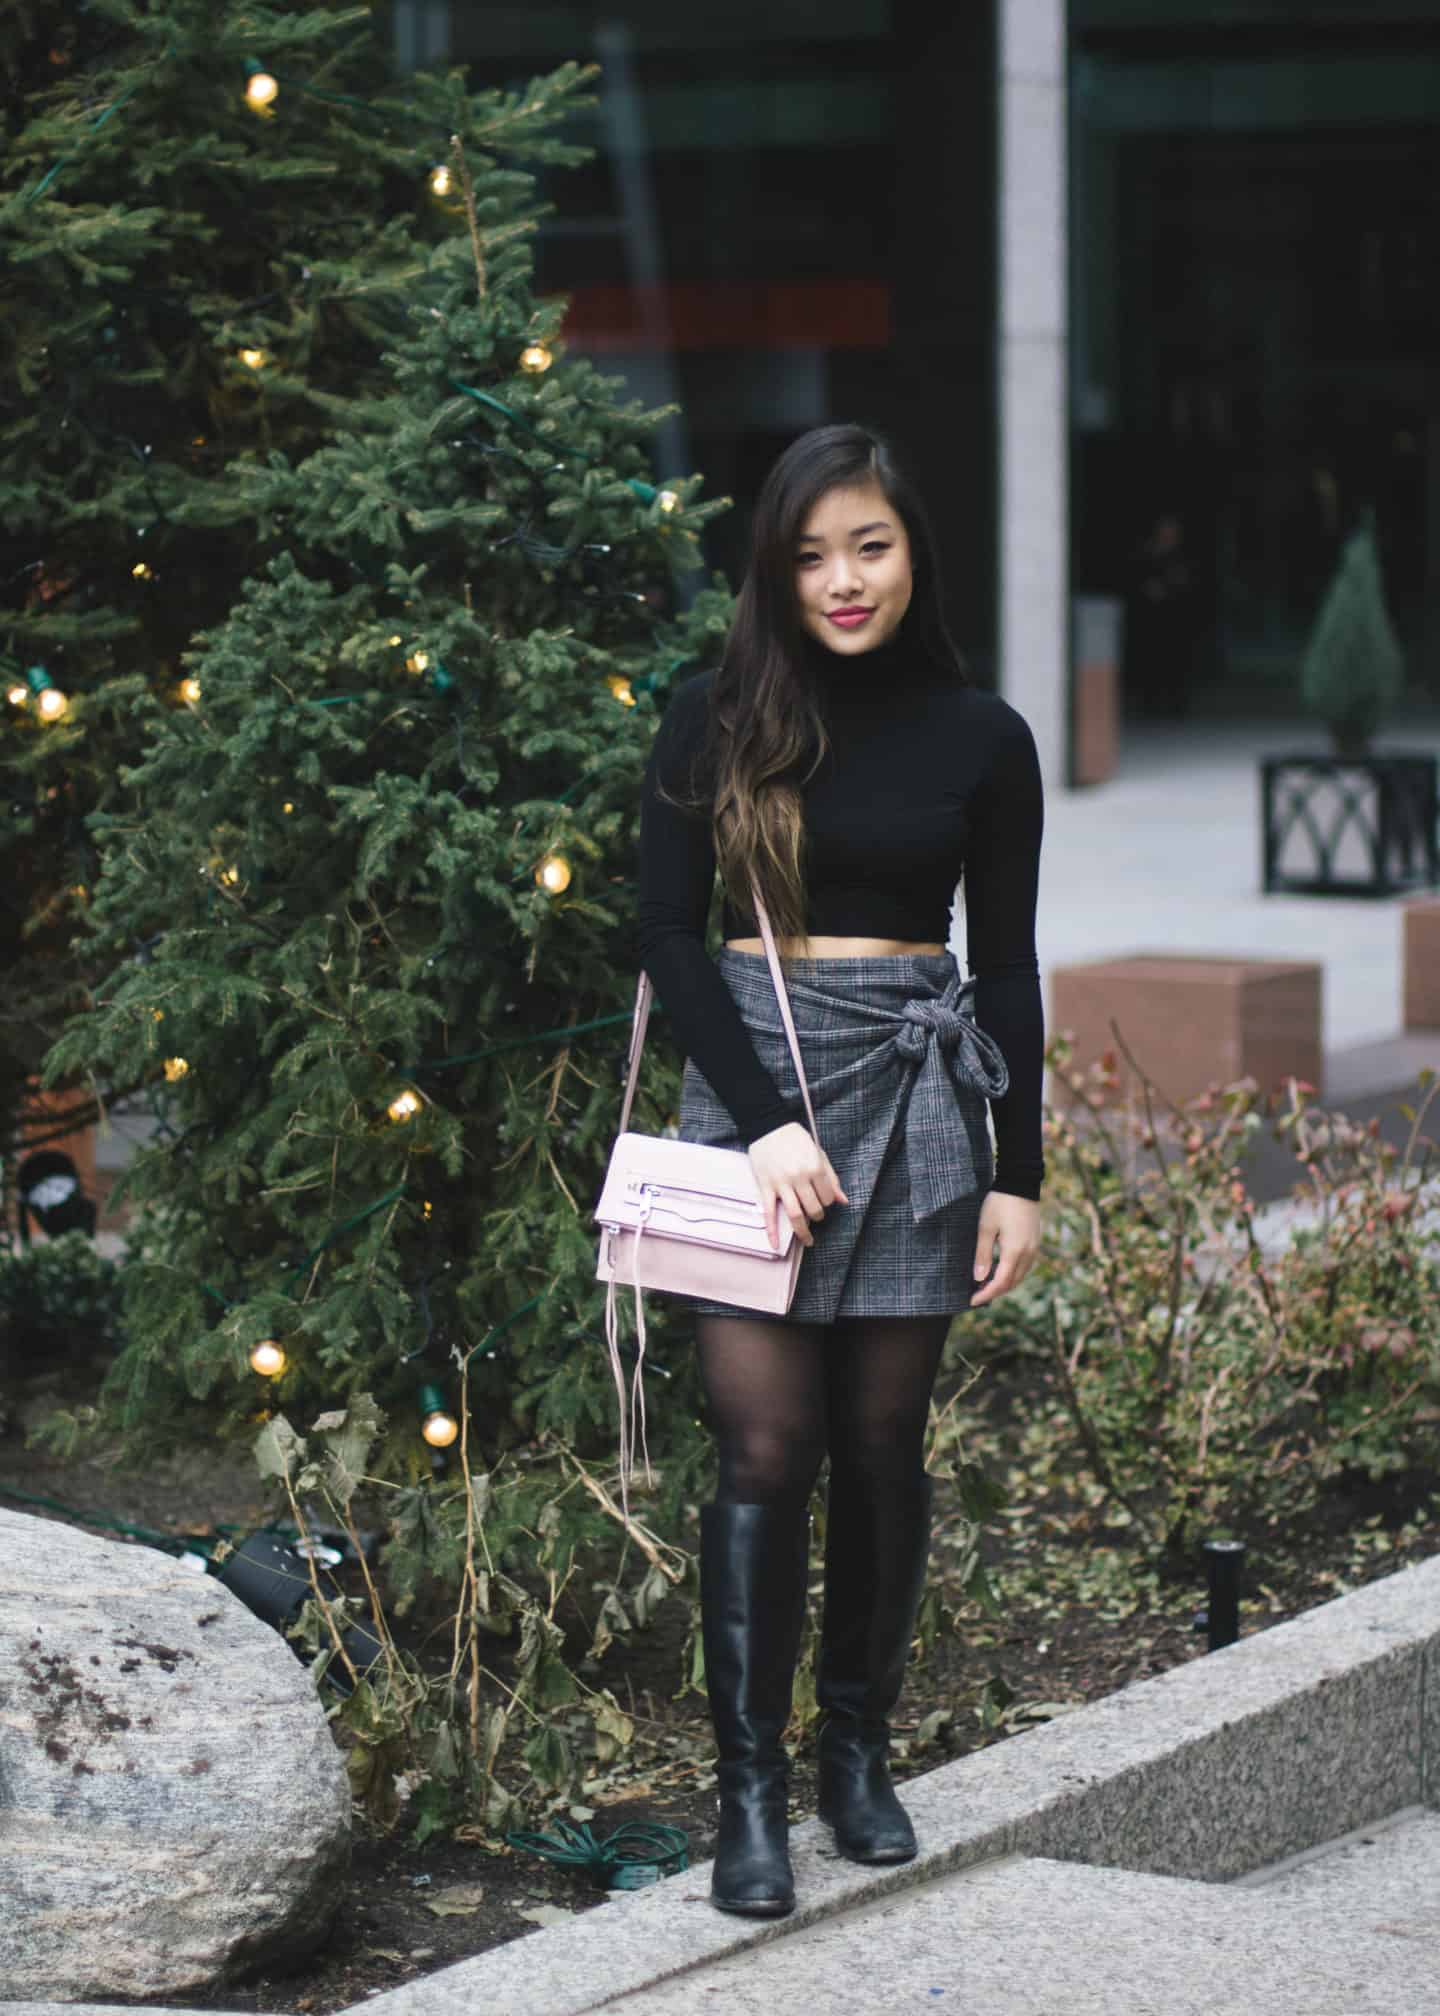 Holiday outfit idea featuring black turtleneck, plaid skirt, and tall leather boots